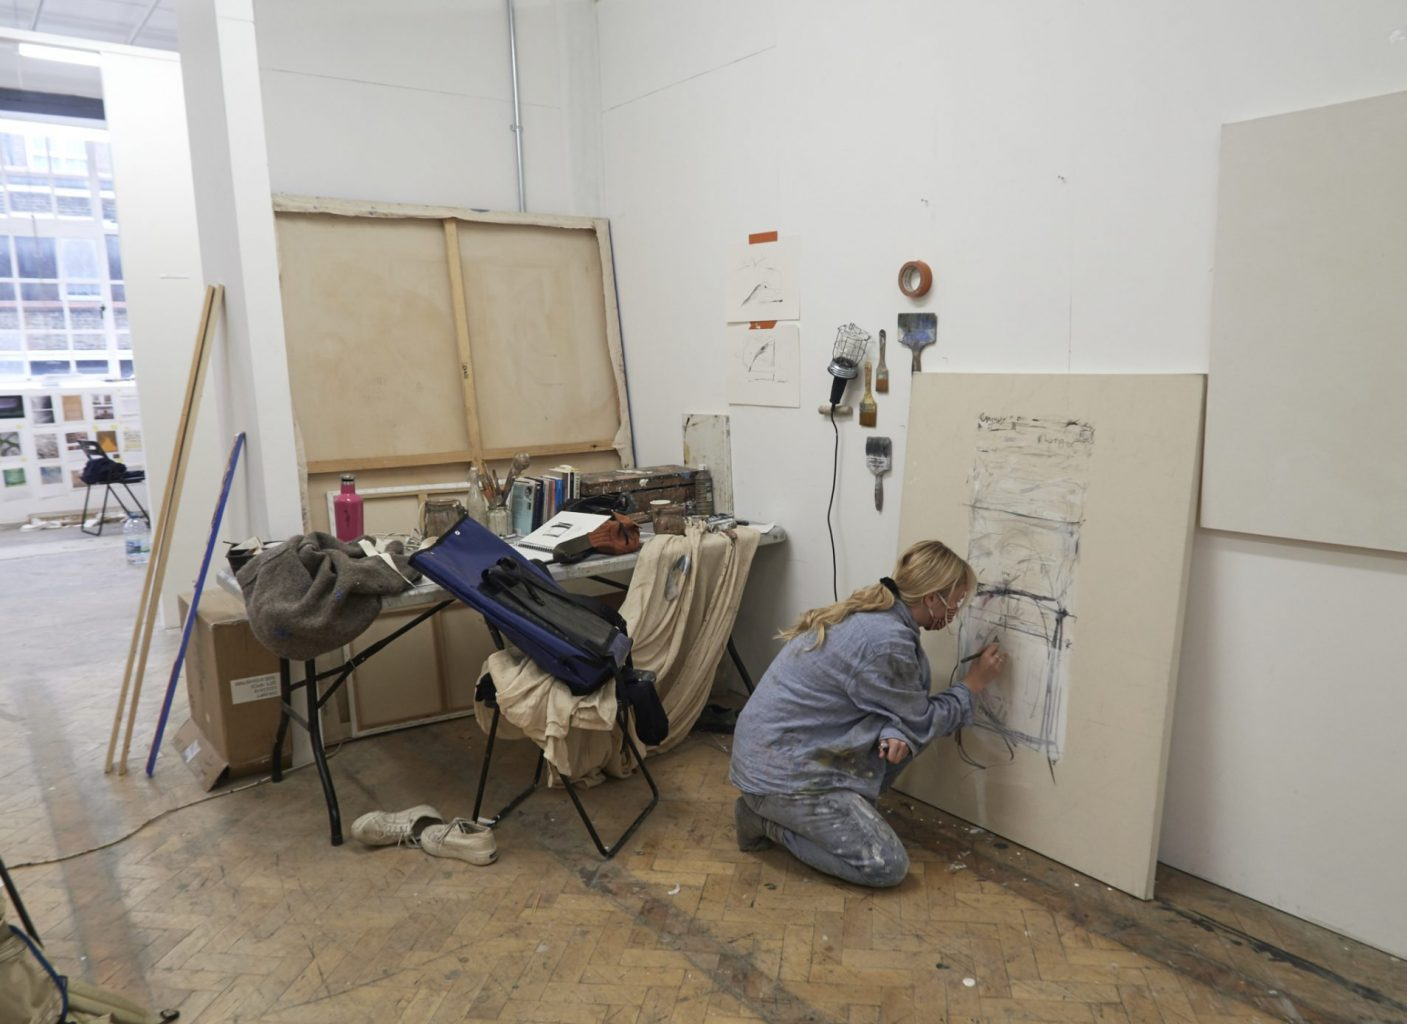 How can an Art School function during a global pandemic? - Fine Art student working on piece in studio